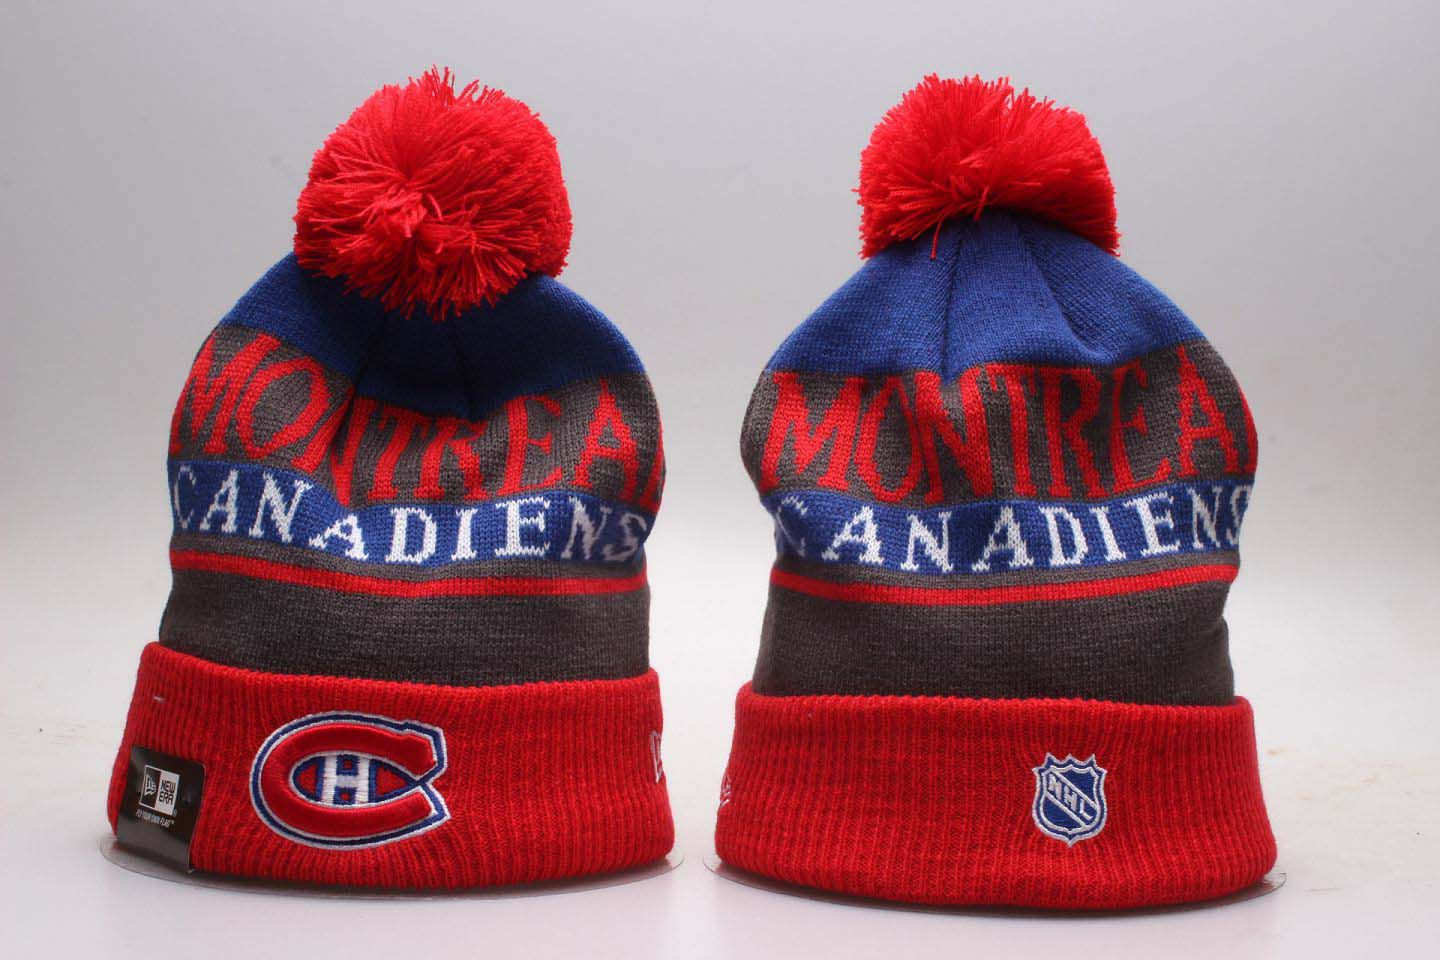 NHL Montreal Canadiens Beanie hot hat